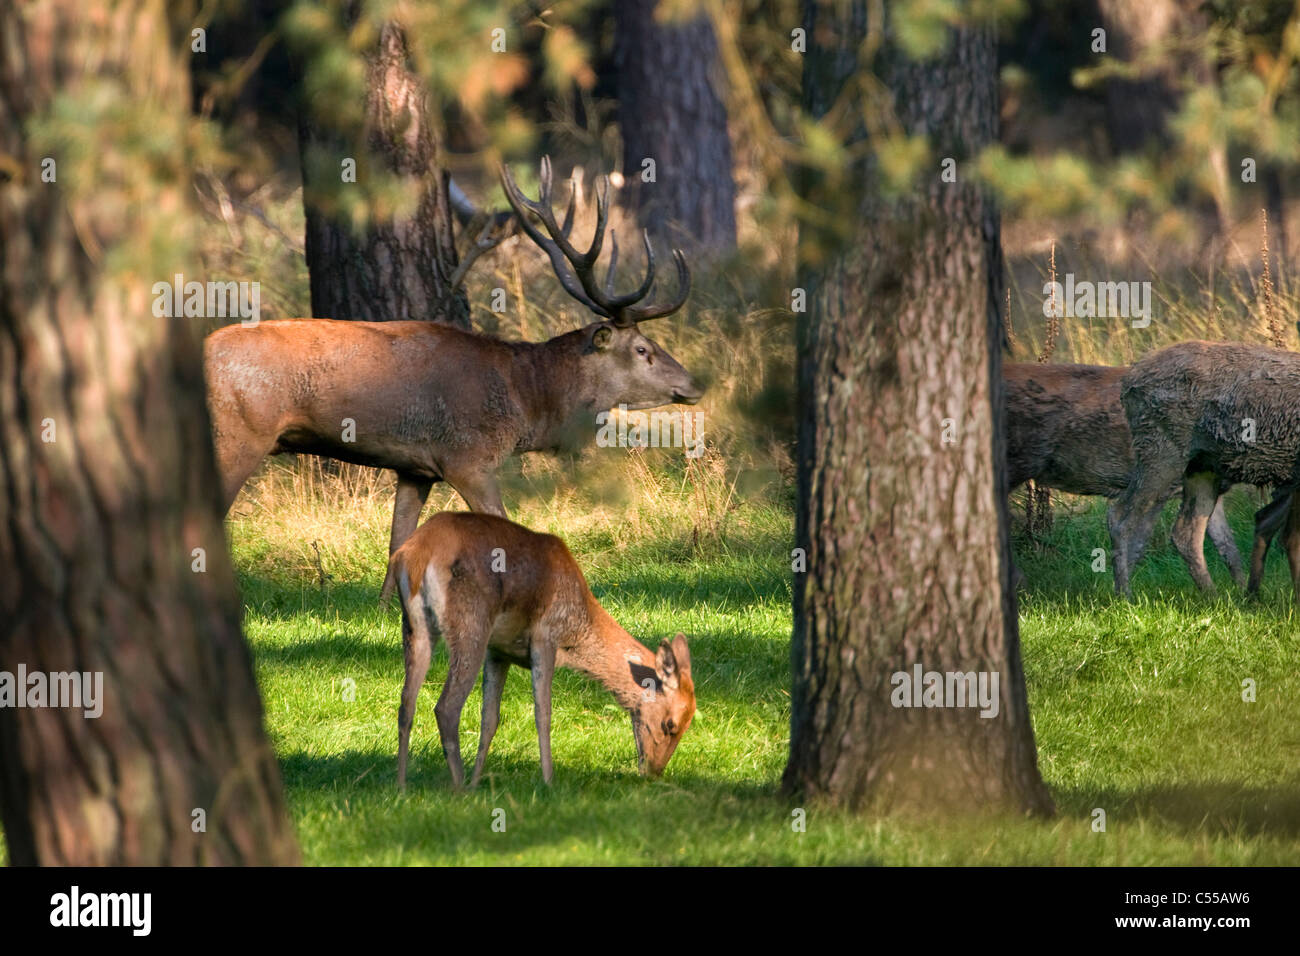 The Netherlands, Otterlo, National Park called De Hoge Veluwe. Red Deer (Cervus elaphus). - Stock Image